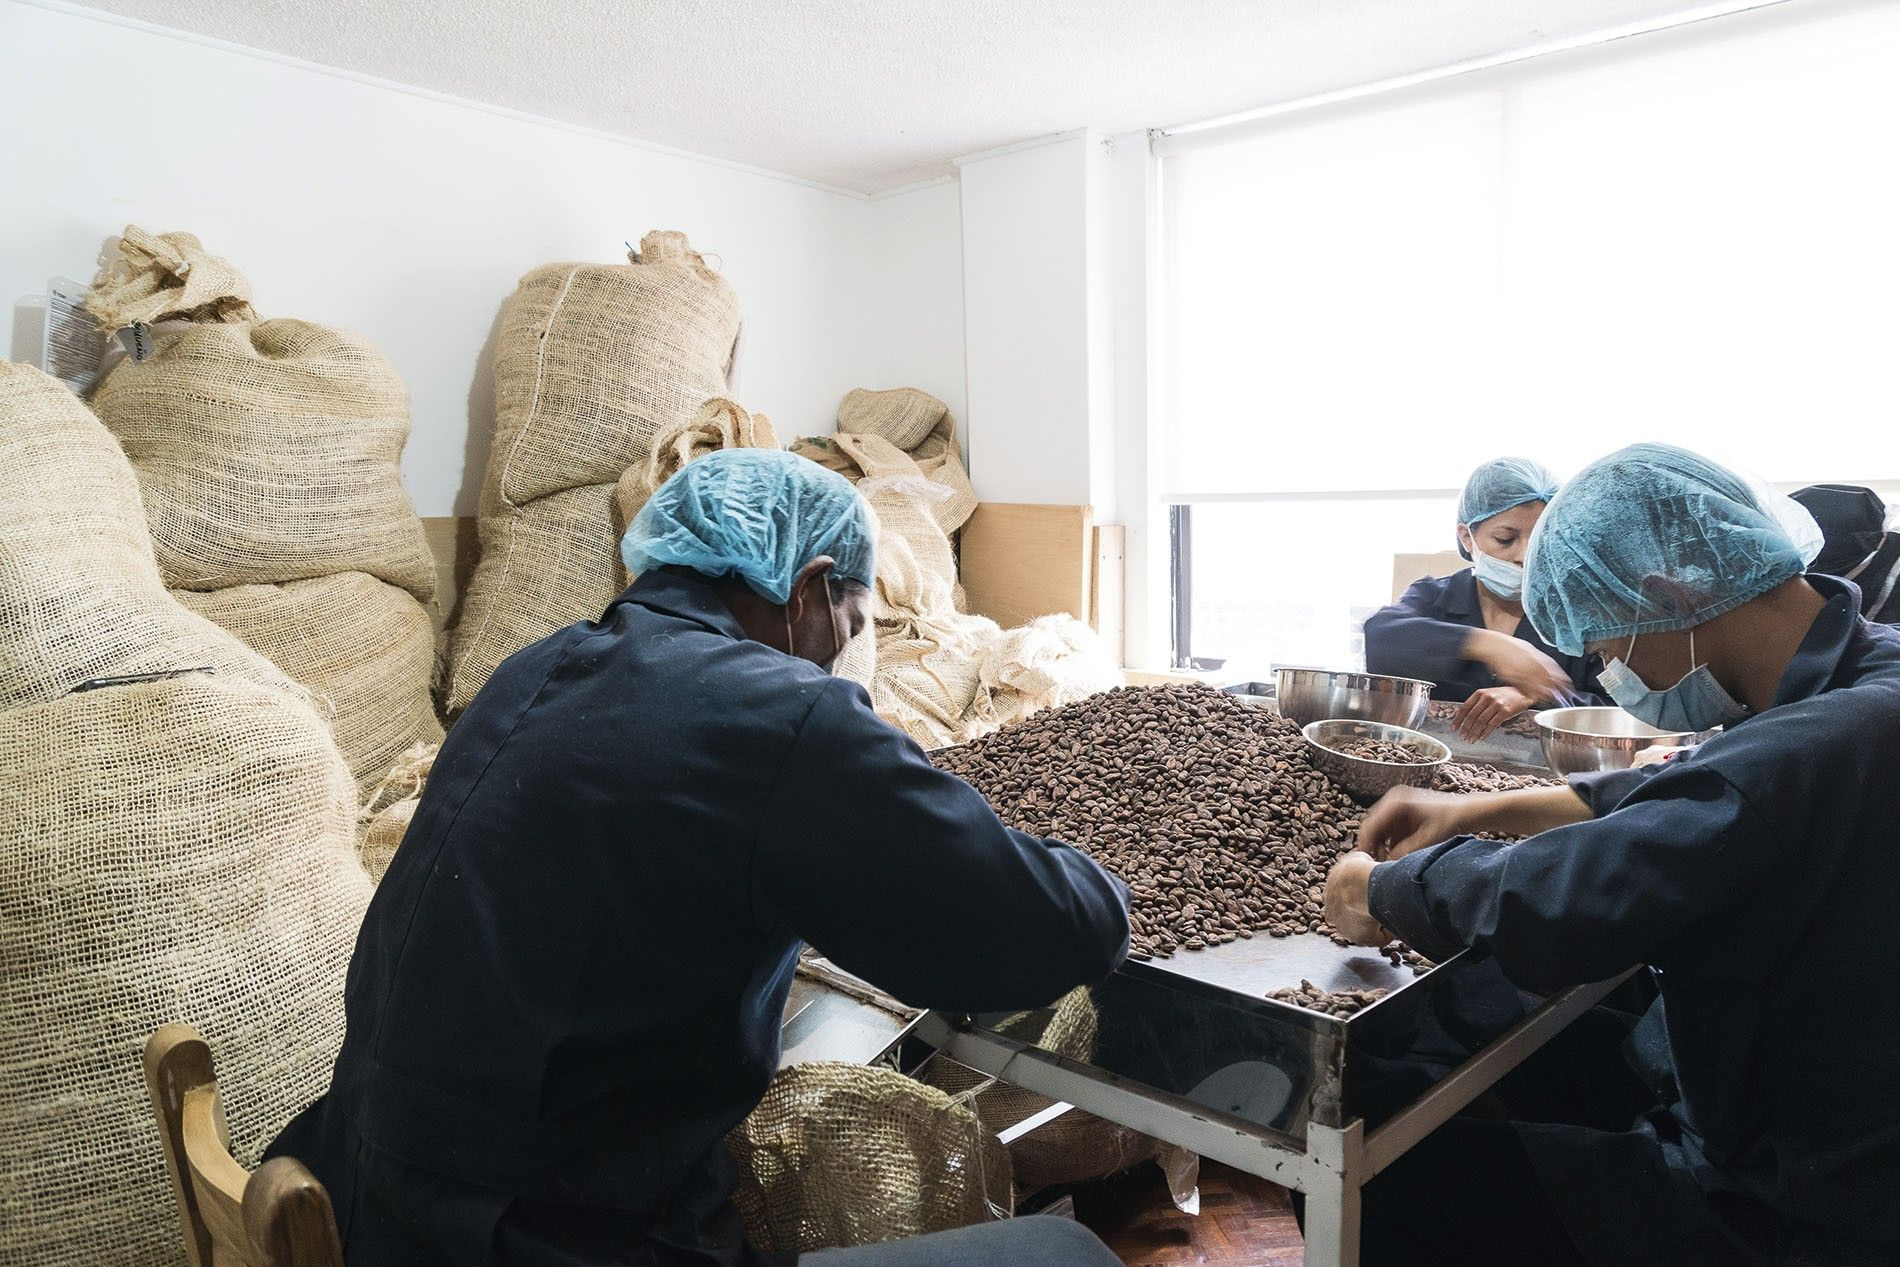 Workers sort cacao beans for size at To'ak.